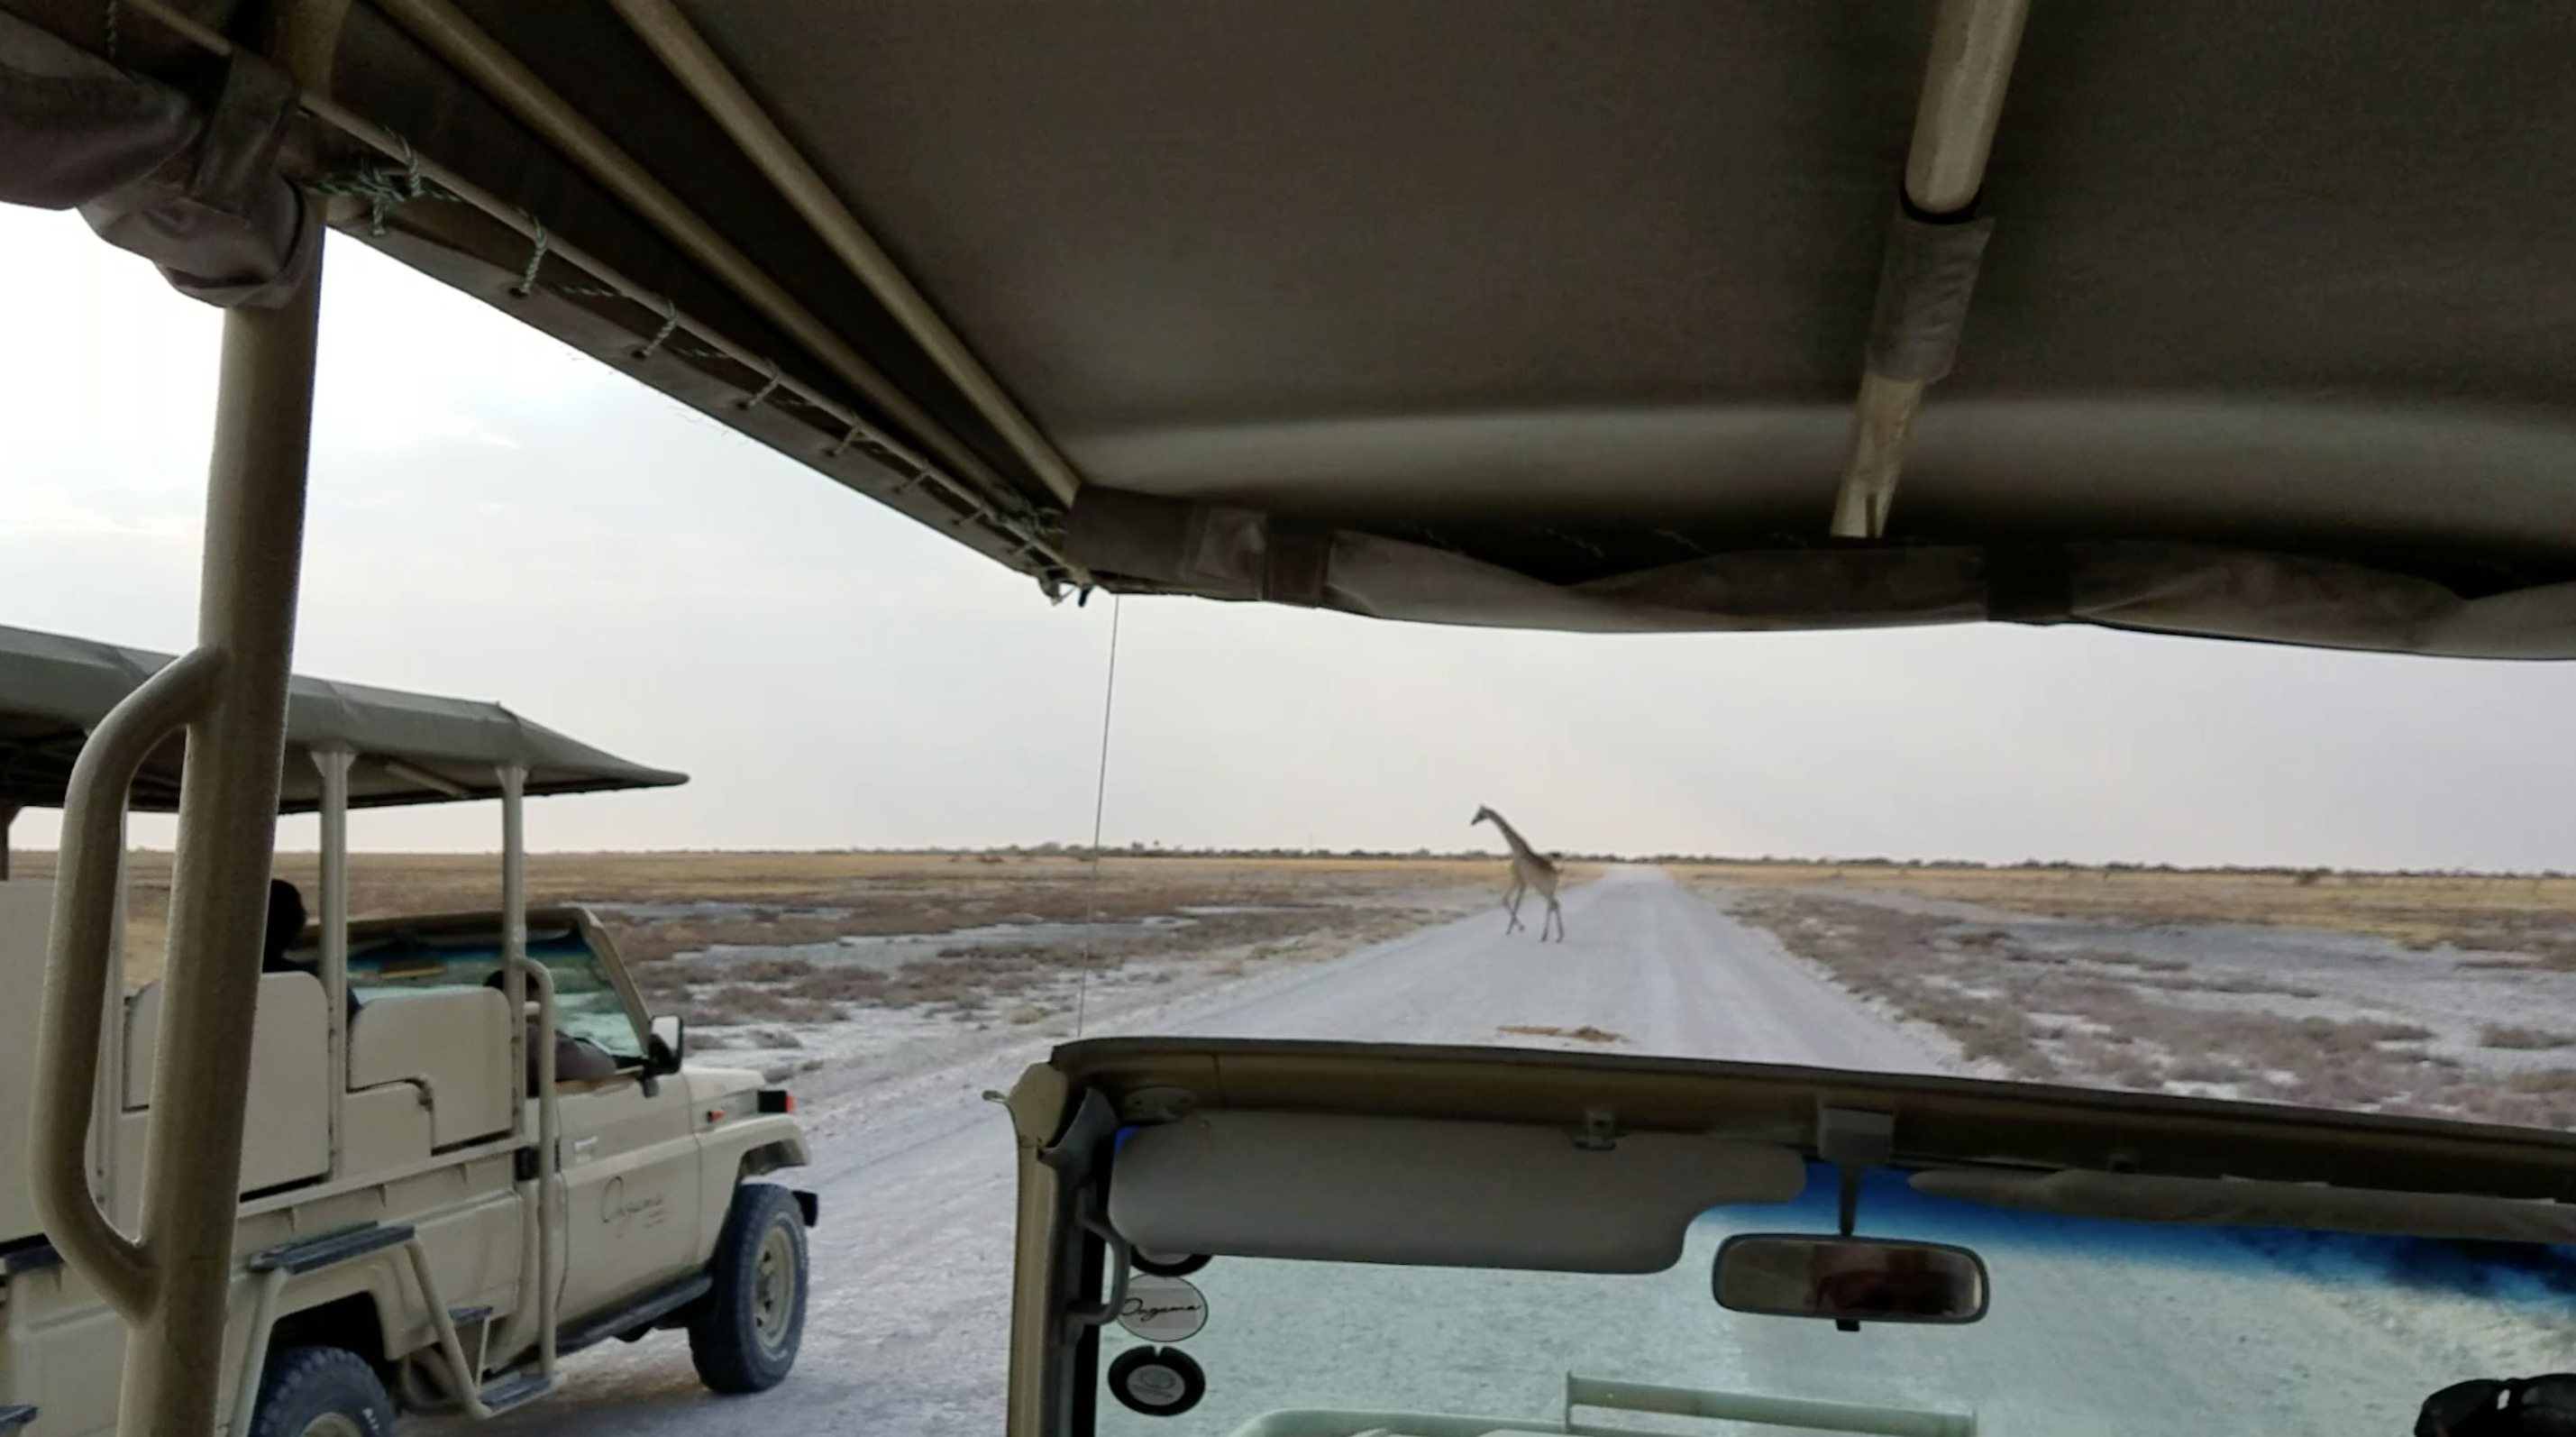 giraffe-namibia-video-screenshot